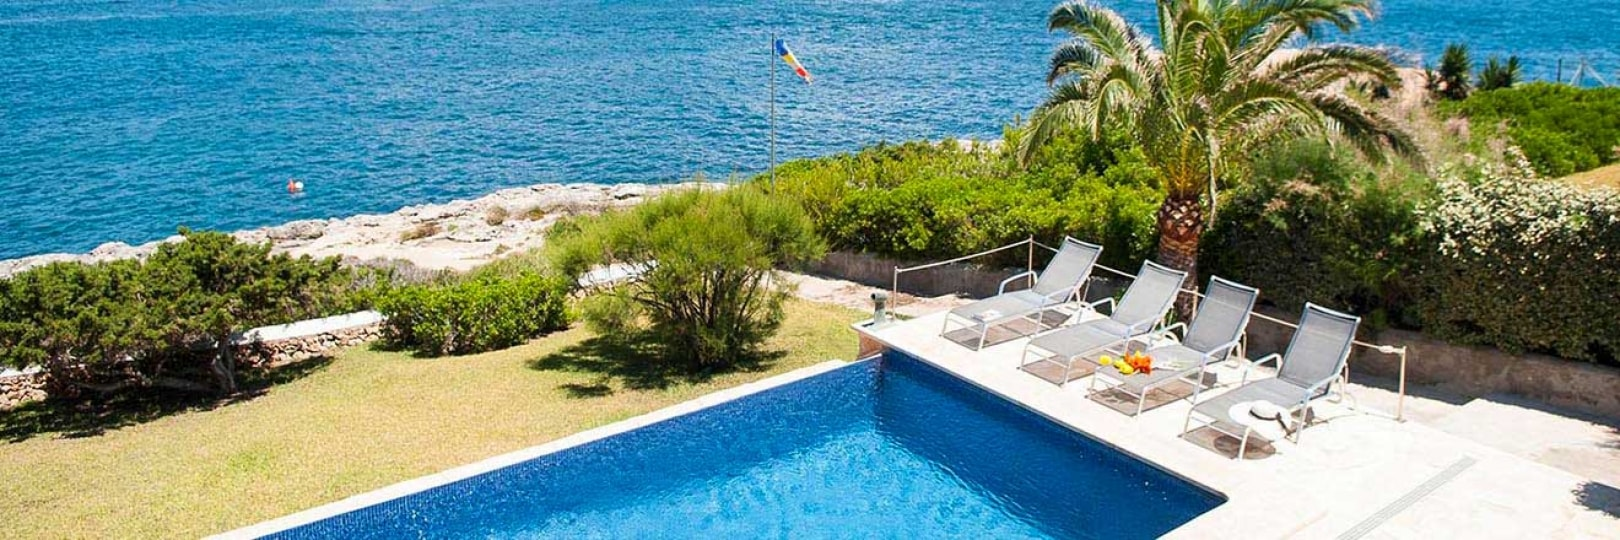 Seafront holiday villa in Majorca for rent - Villa Nins